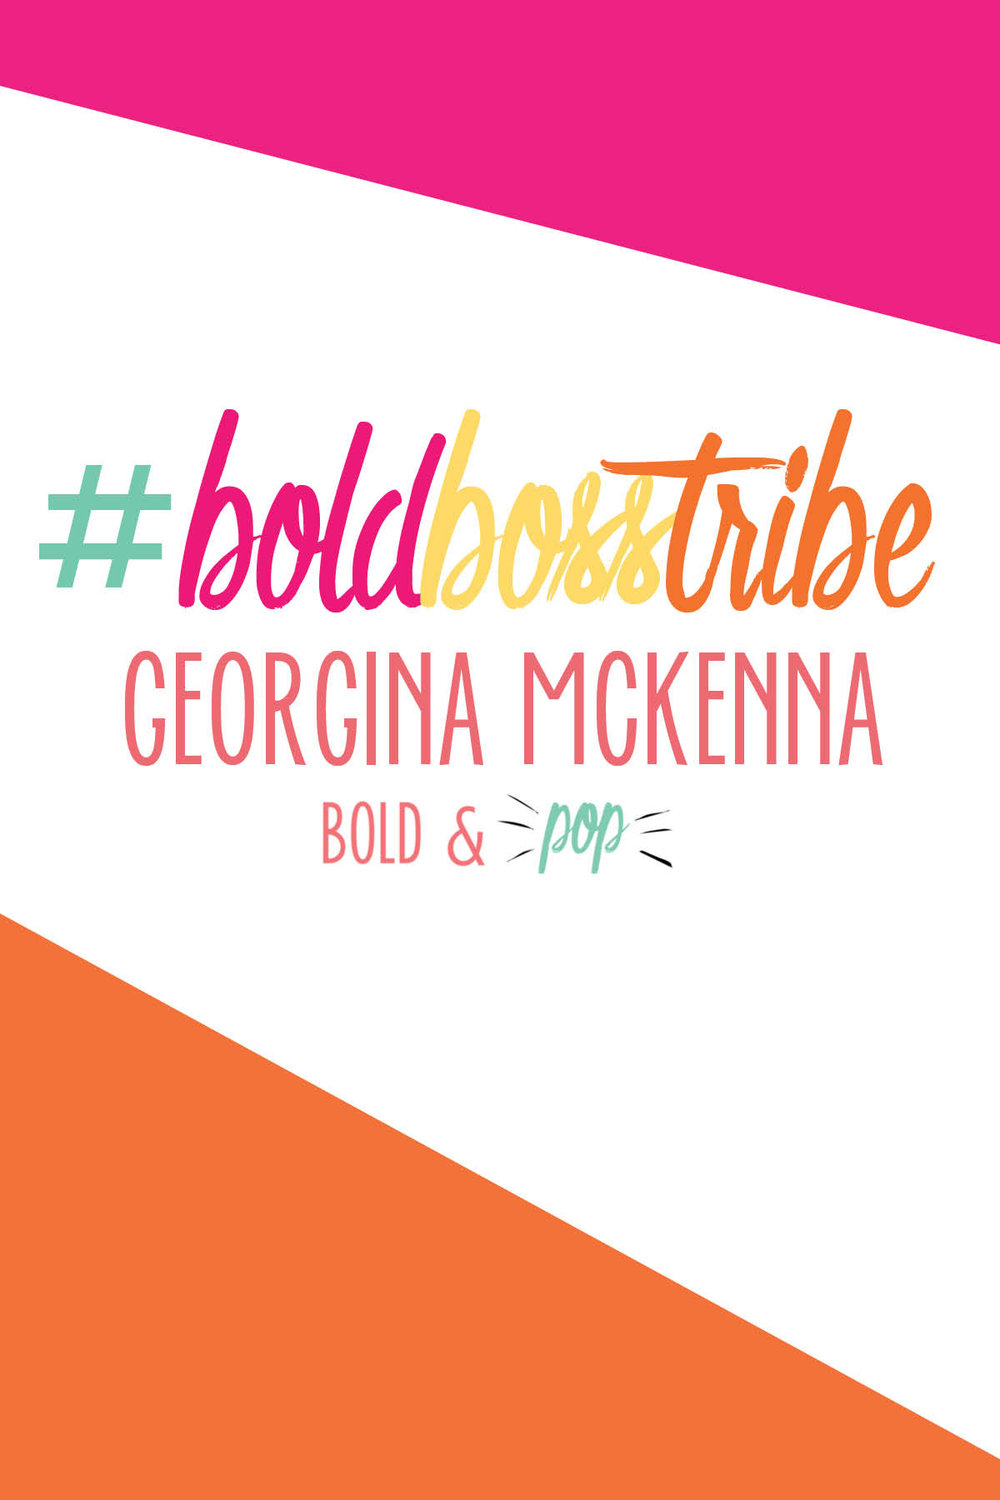 #BoldBossTribe :: Bold Boss Tribe Feature Georgina McKenna of Count Her In